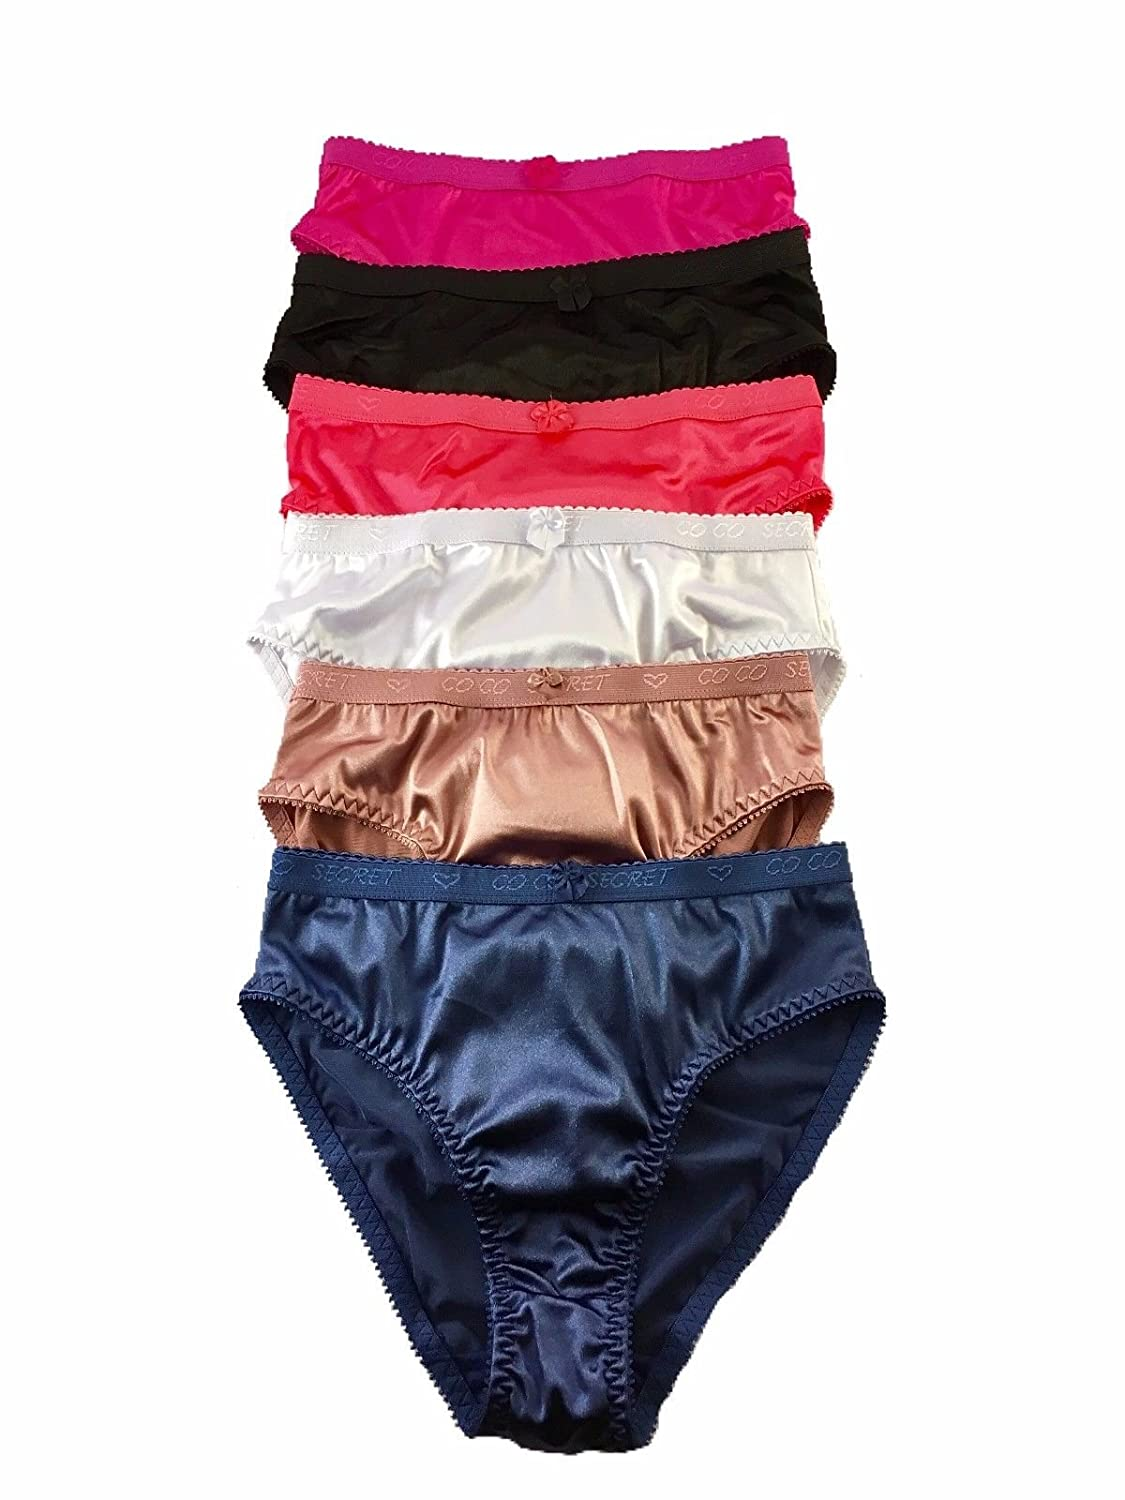 62f0825a2902 Peachy Panty 6 Pack Satin Shine Full Coverage Women's Panties Smooth Soft  Nylon: Amazon.ca: Luggage & Bags